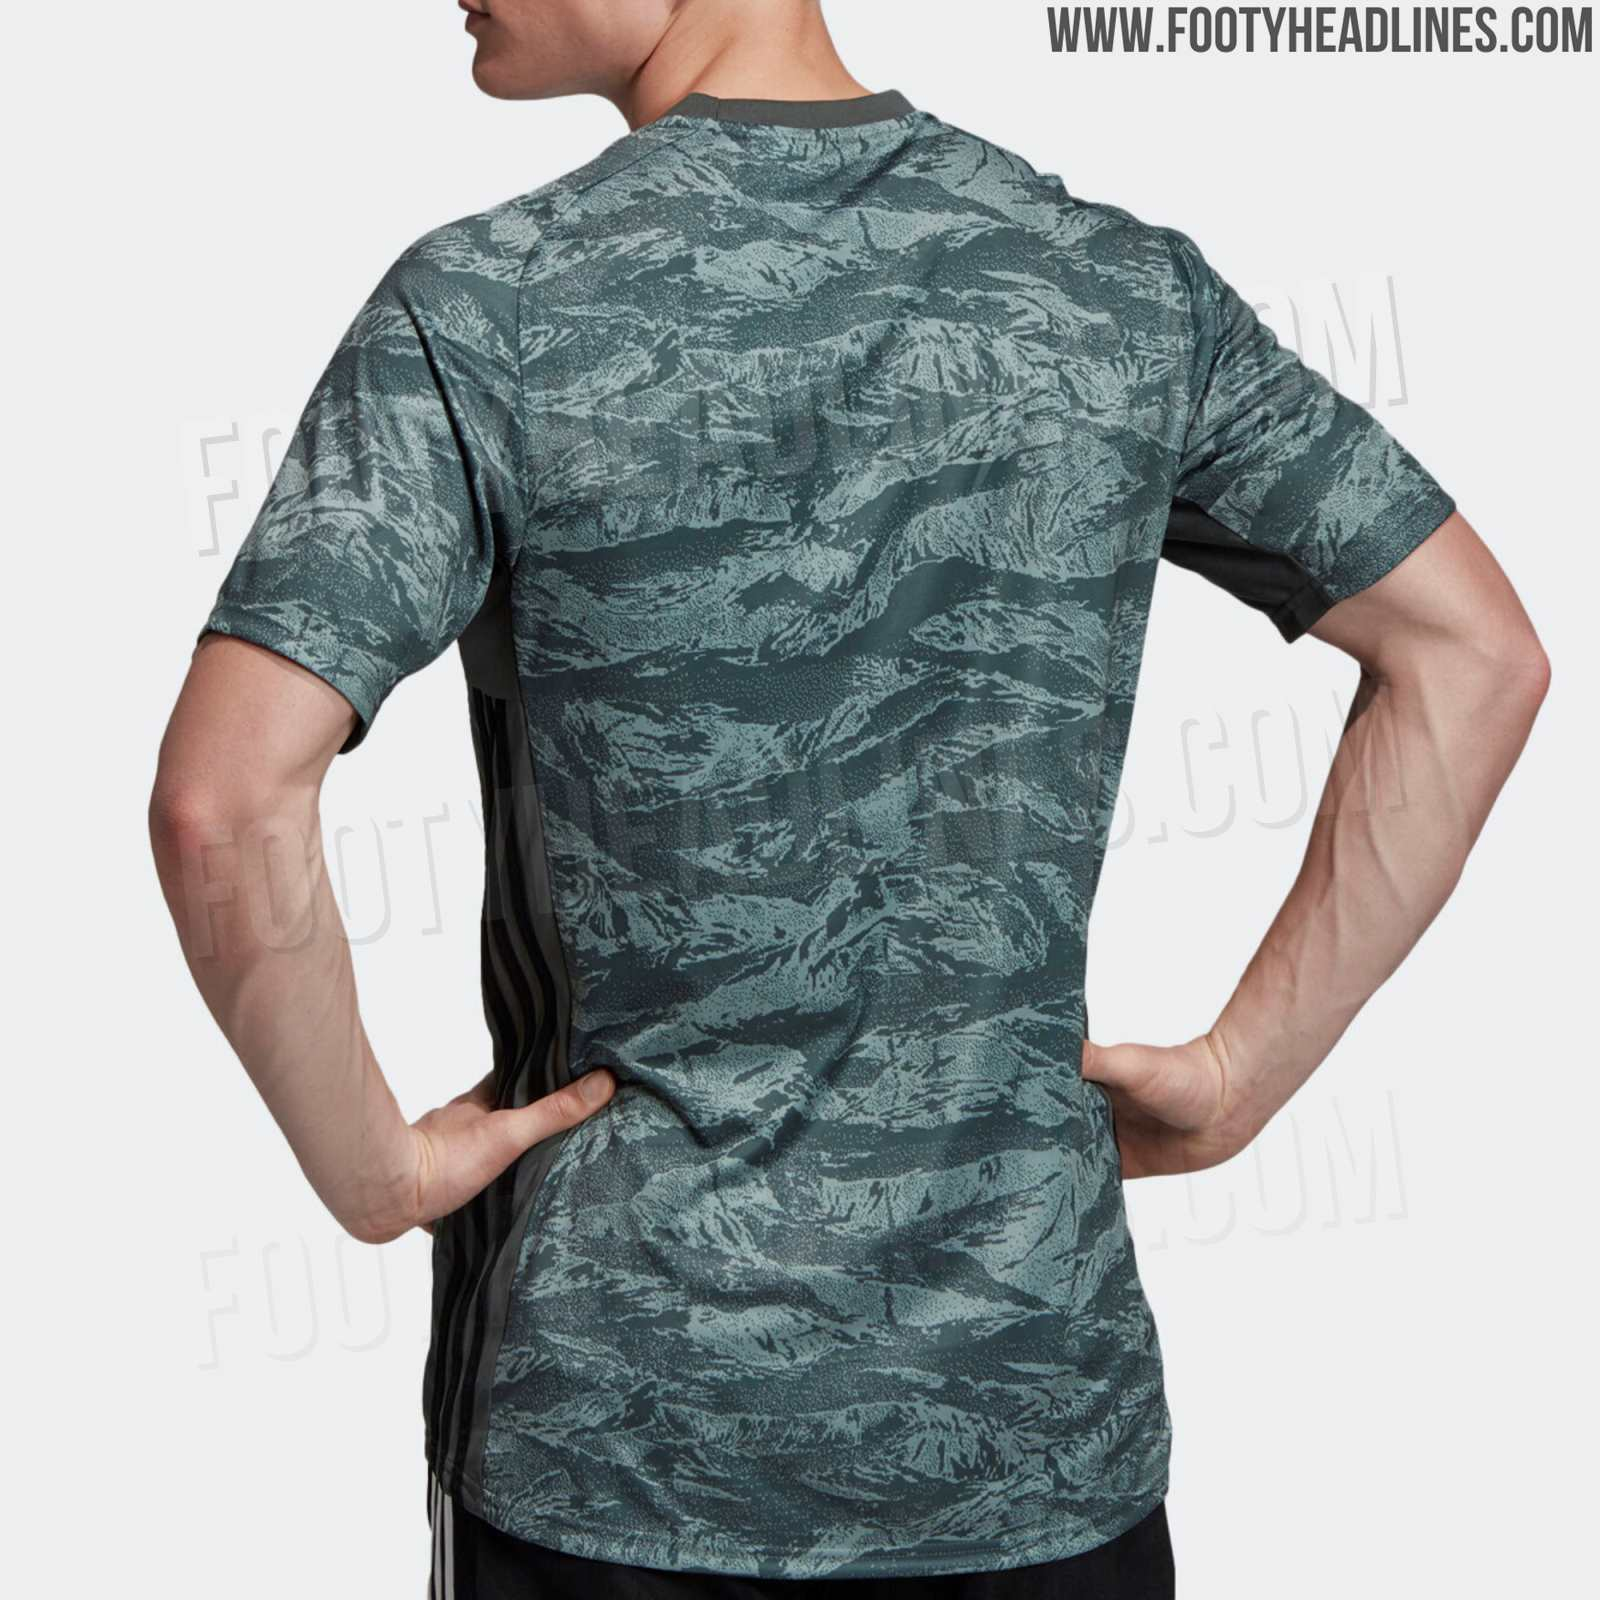 Real Madrid Away Kit Real Madrid 19-20 Goalkeeper Away Kit Leaked - Footy Headlines